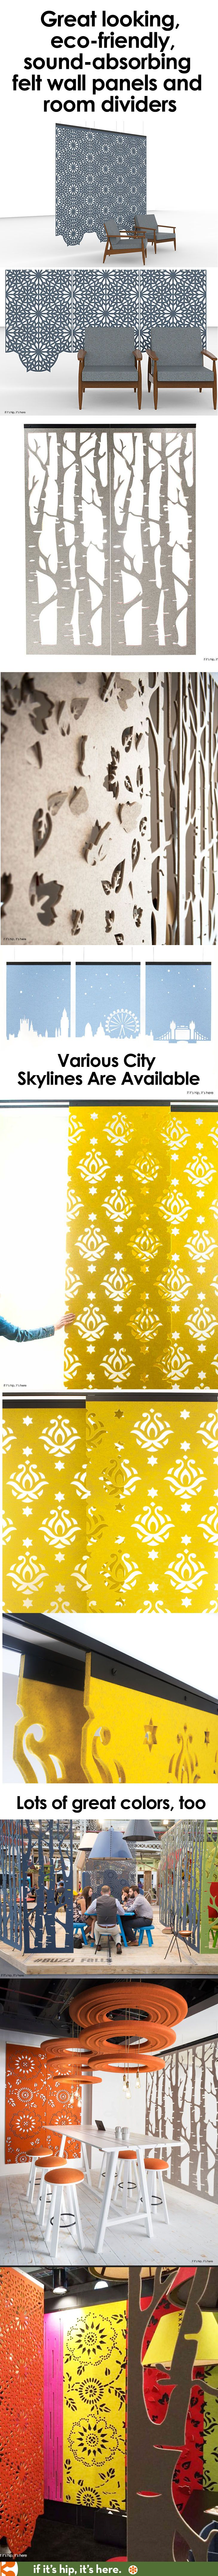 Need a good looking way to keep the sound down in your rooms or office? These sound-dampening wall panels and room dividers are a great solution. Learn more at  http://www.ifitshipitshere.com/buzzifalls-sound-absorbing-felt-room-dividers/